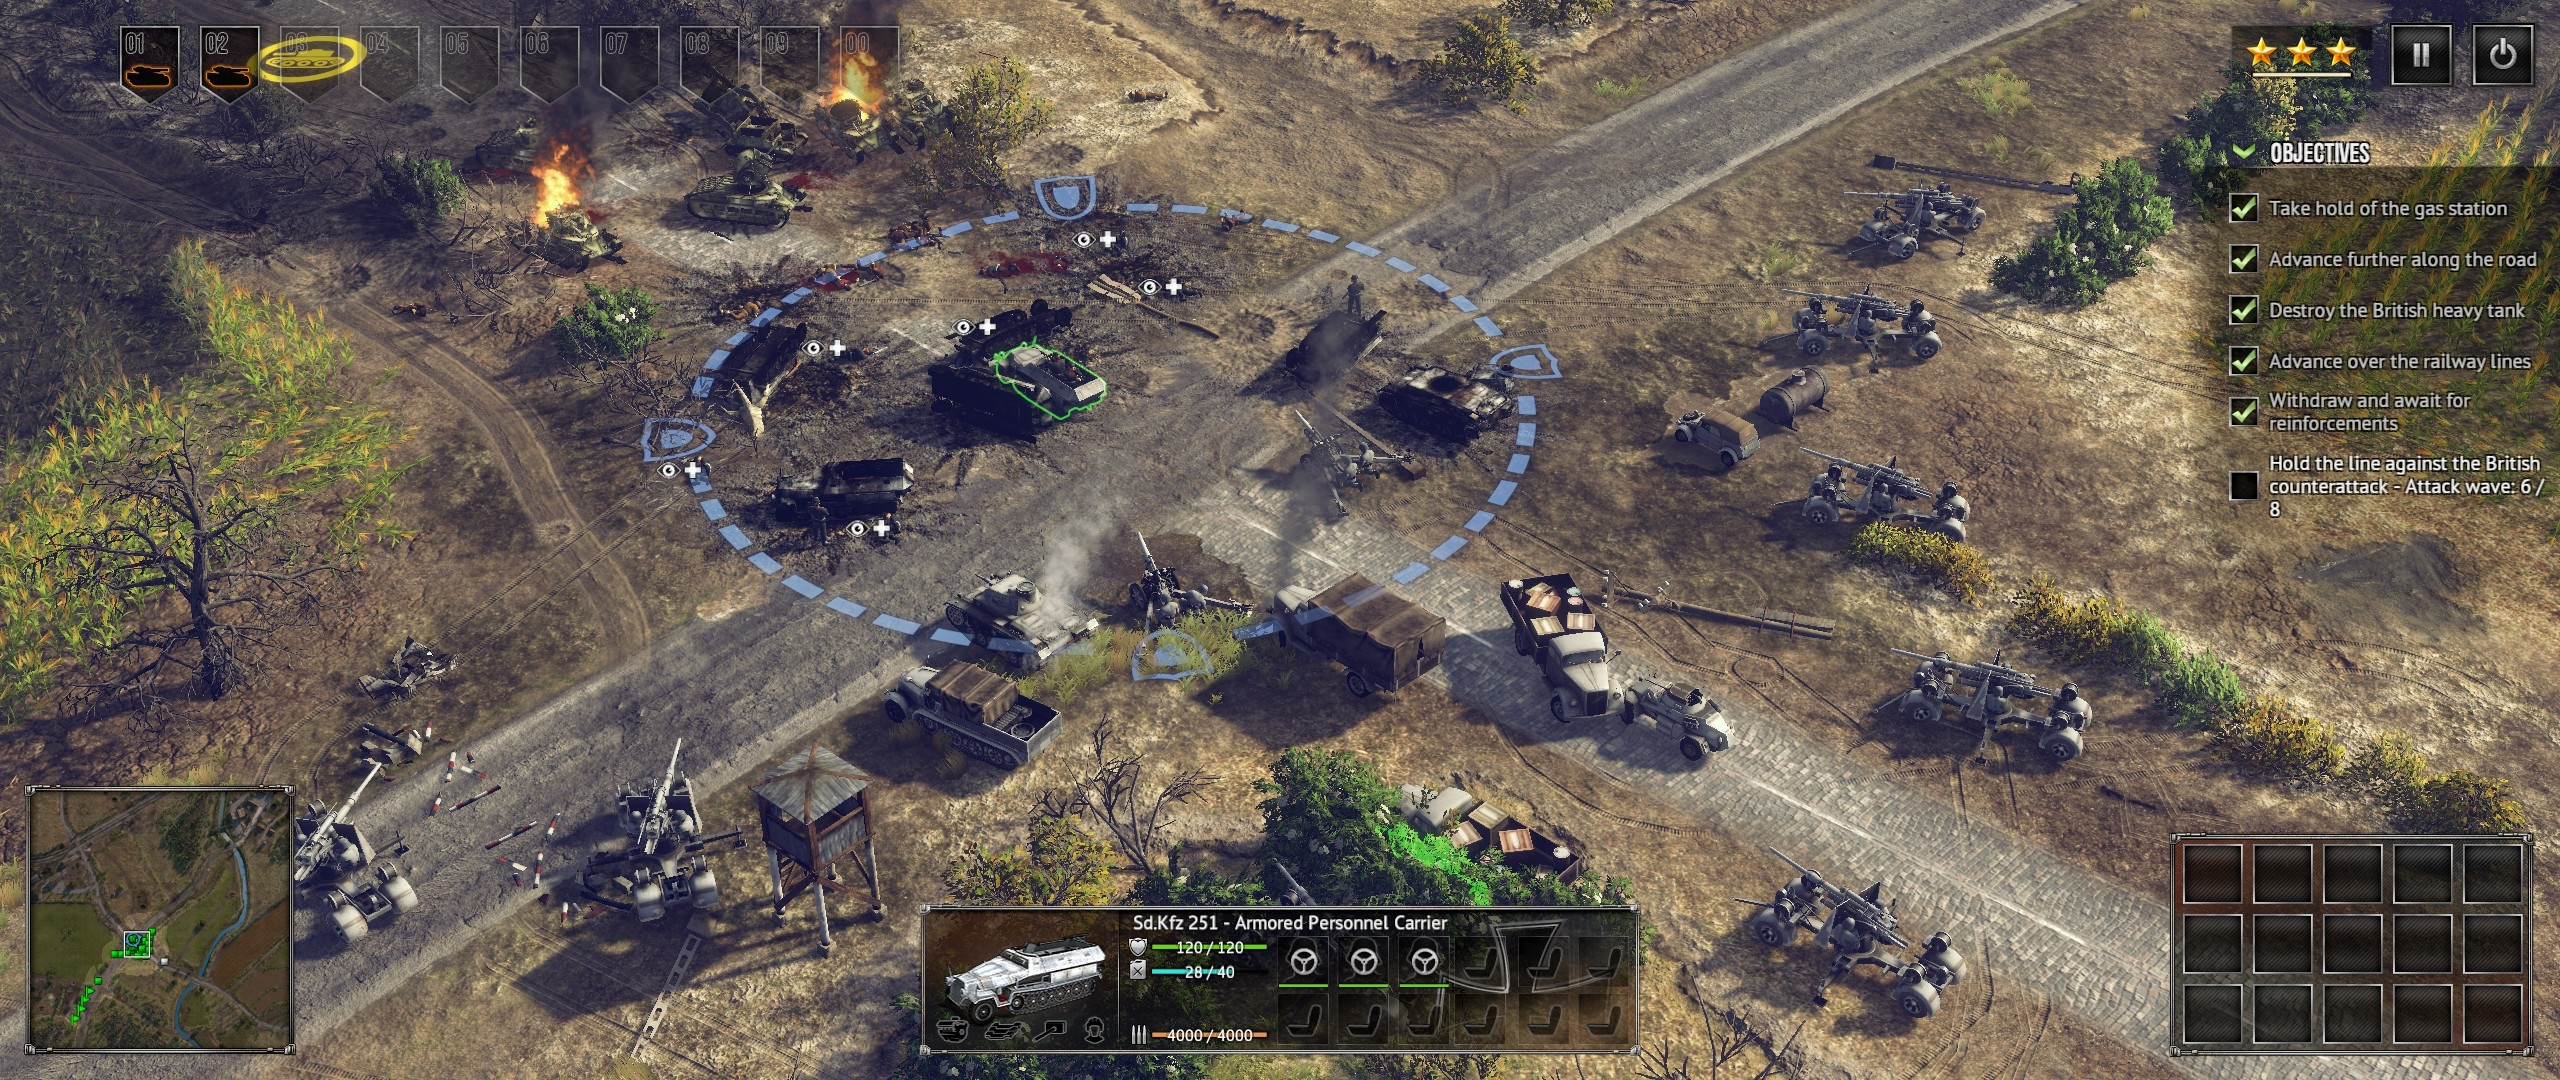 Sudden Strike 4 Review - Suddenly Striking Soviets